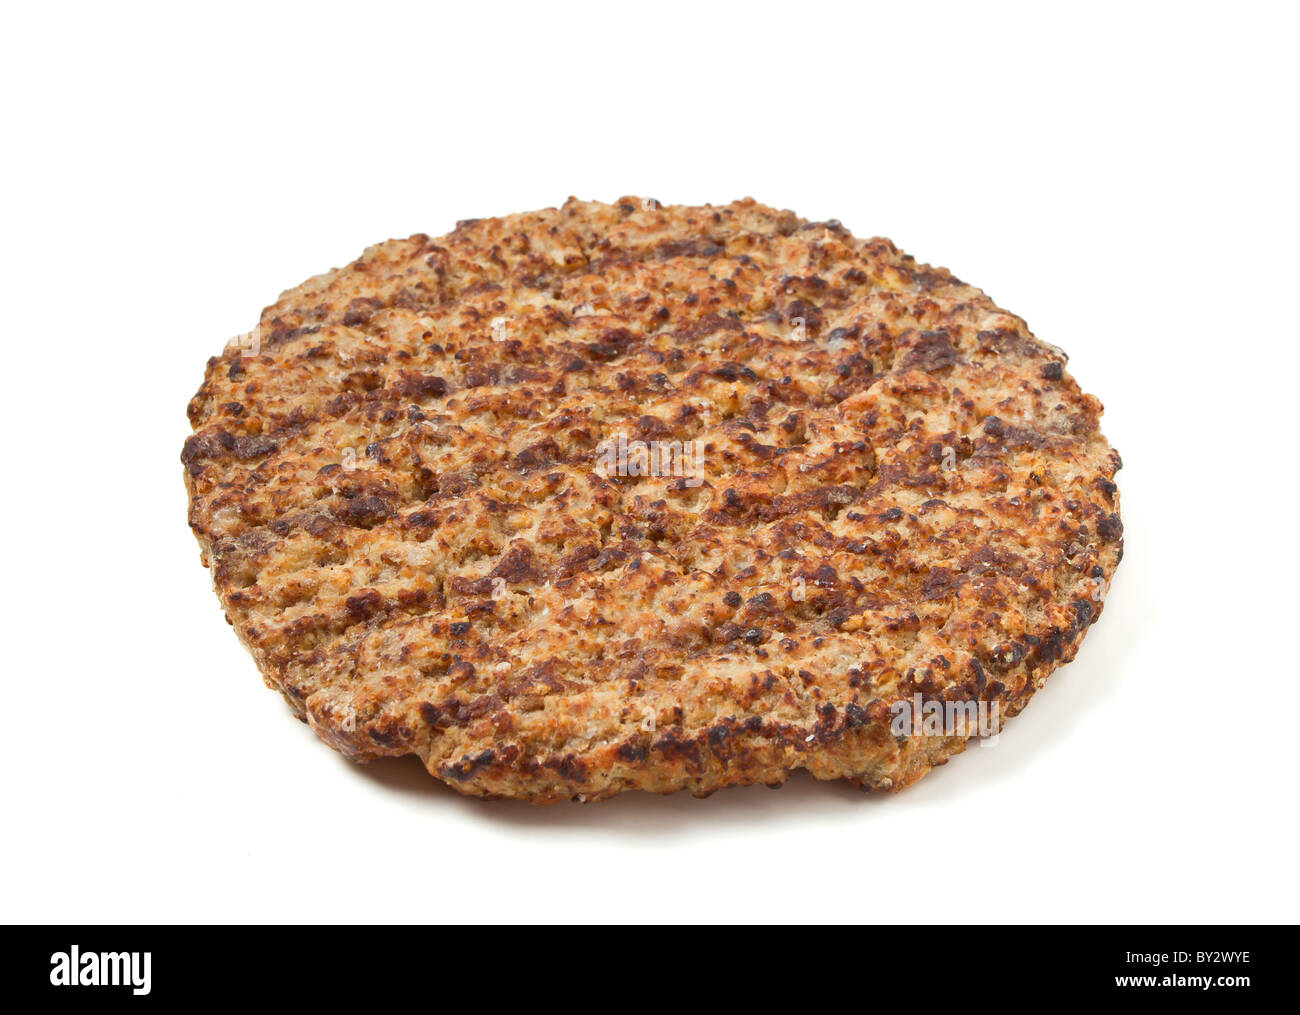 How to cook the minced beef patties 8